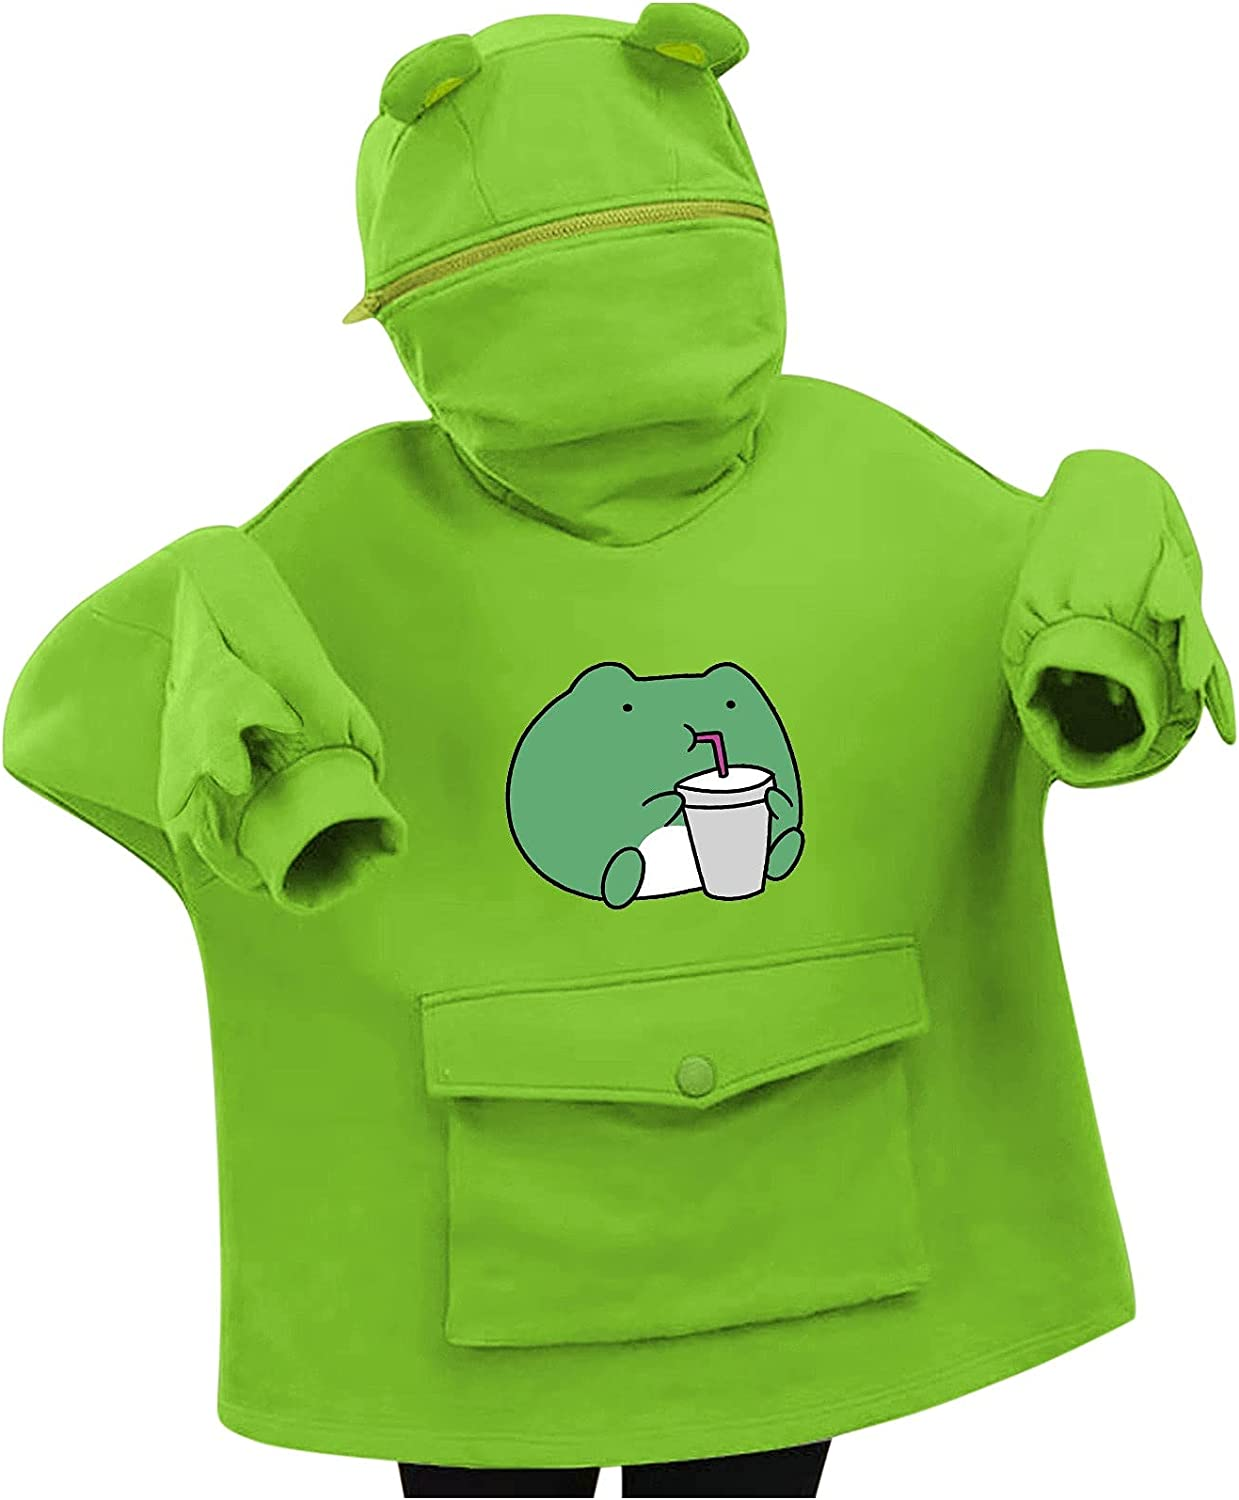 ViYW Women's/Girl's Cute Frog Hoodie Pullover Zipper Mouth Hooded Sweatshirt with Large Front Pocket Sweatshirt Blouse